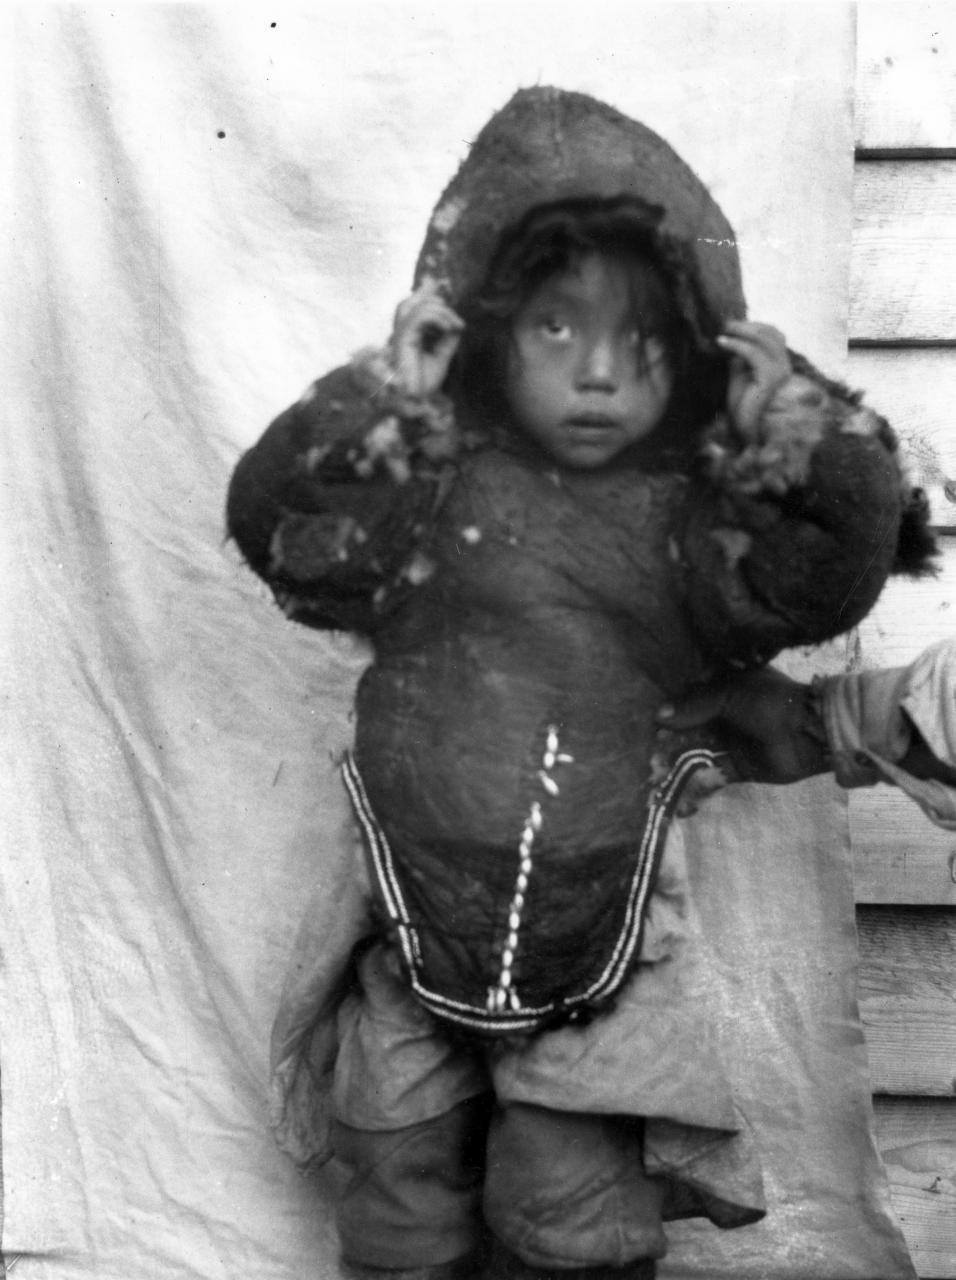 Black and white photo of a child wearing an eider skin parka.